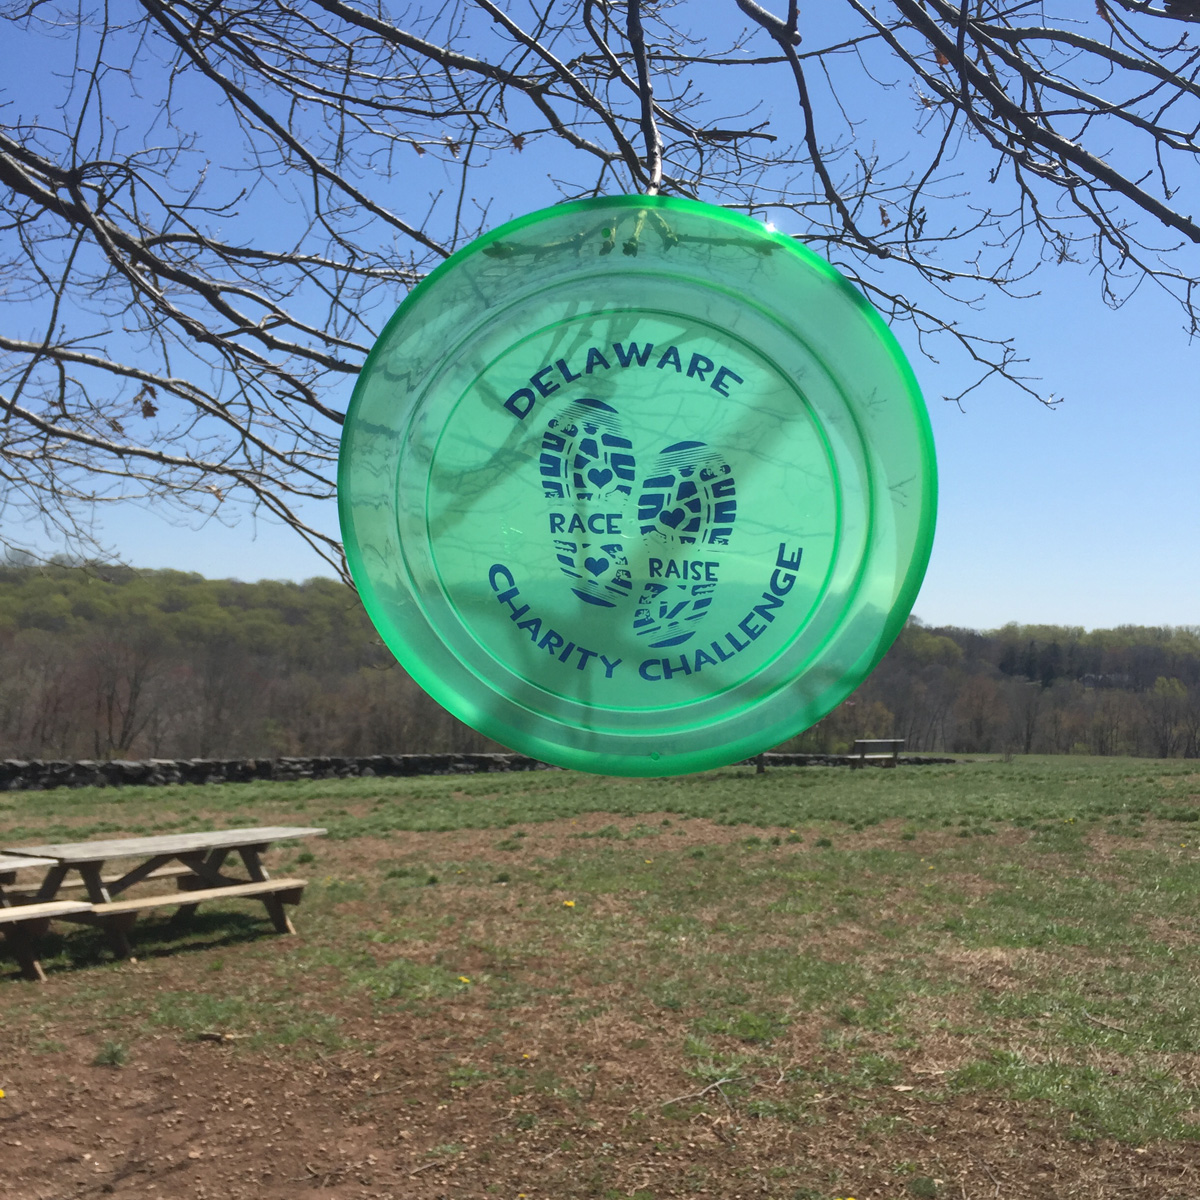 Check out our cool Delaware Charity Challenge frisbee our competitors will receive in their swag bag on April 30.